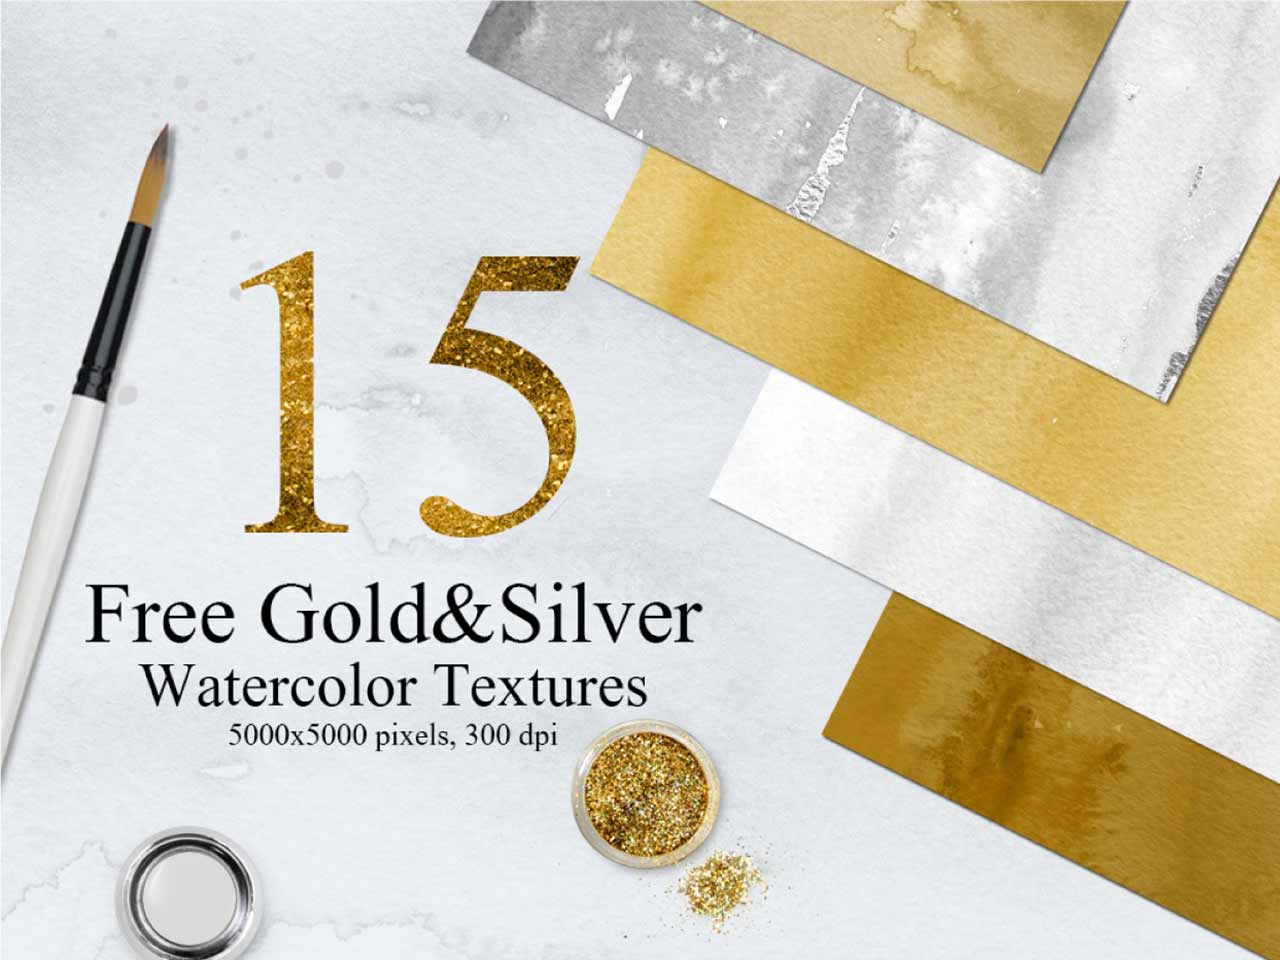 15 Free Gold and Silver Watercolor Textures